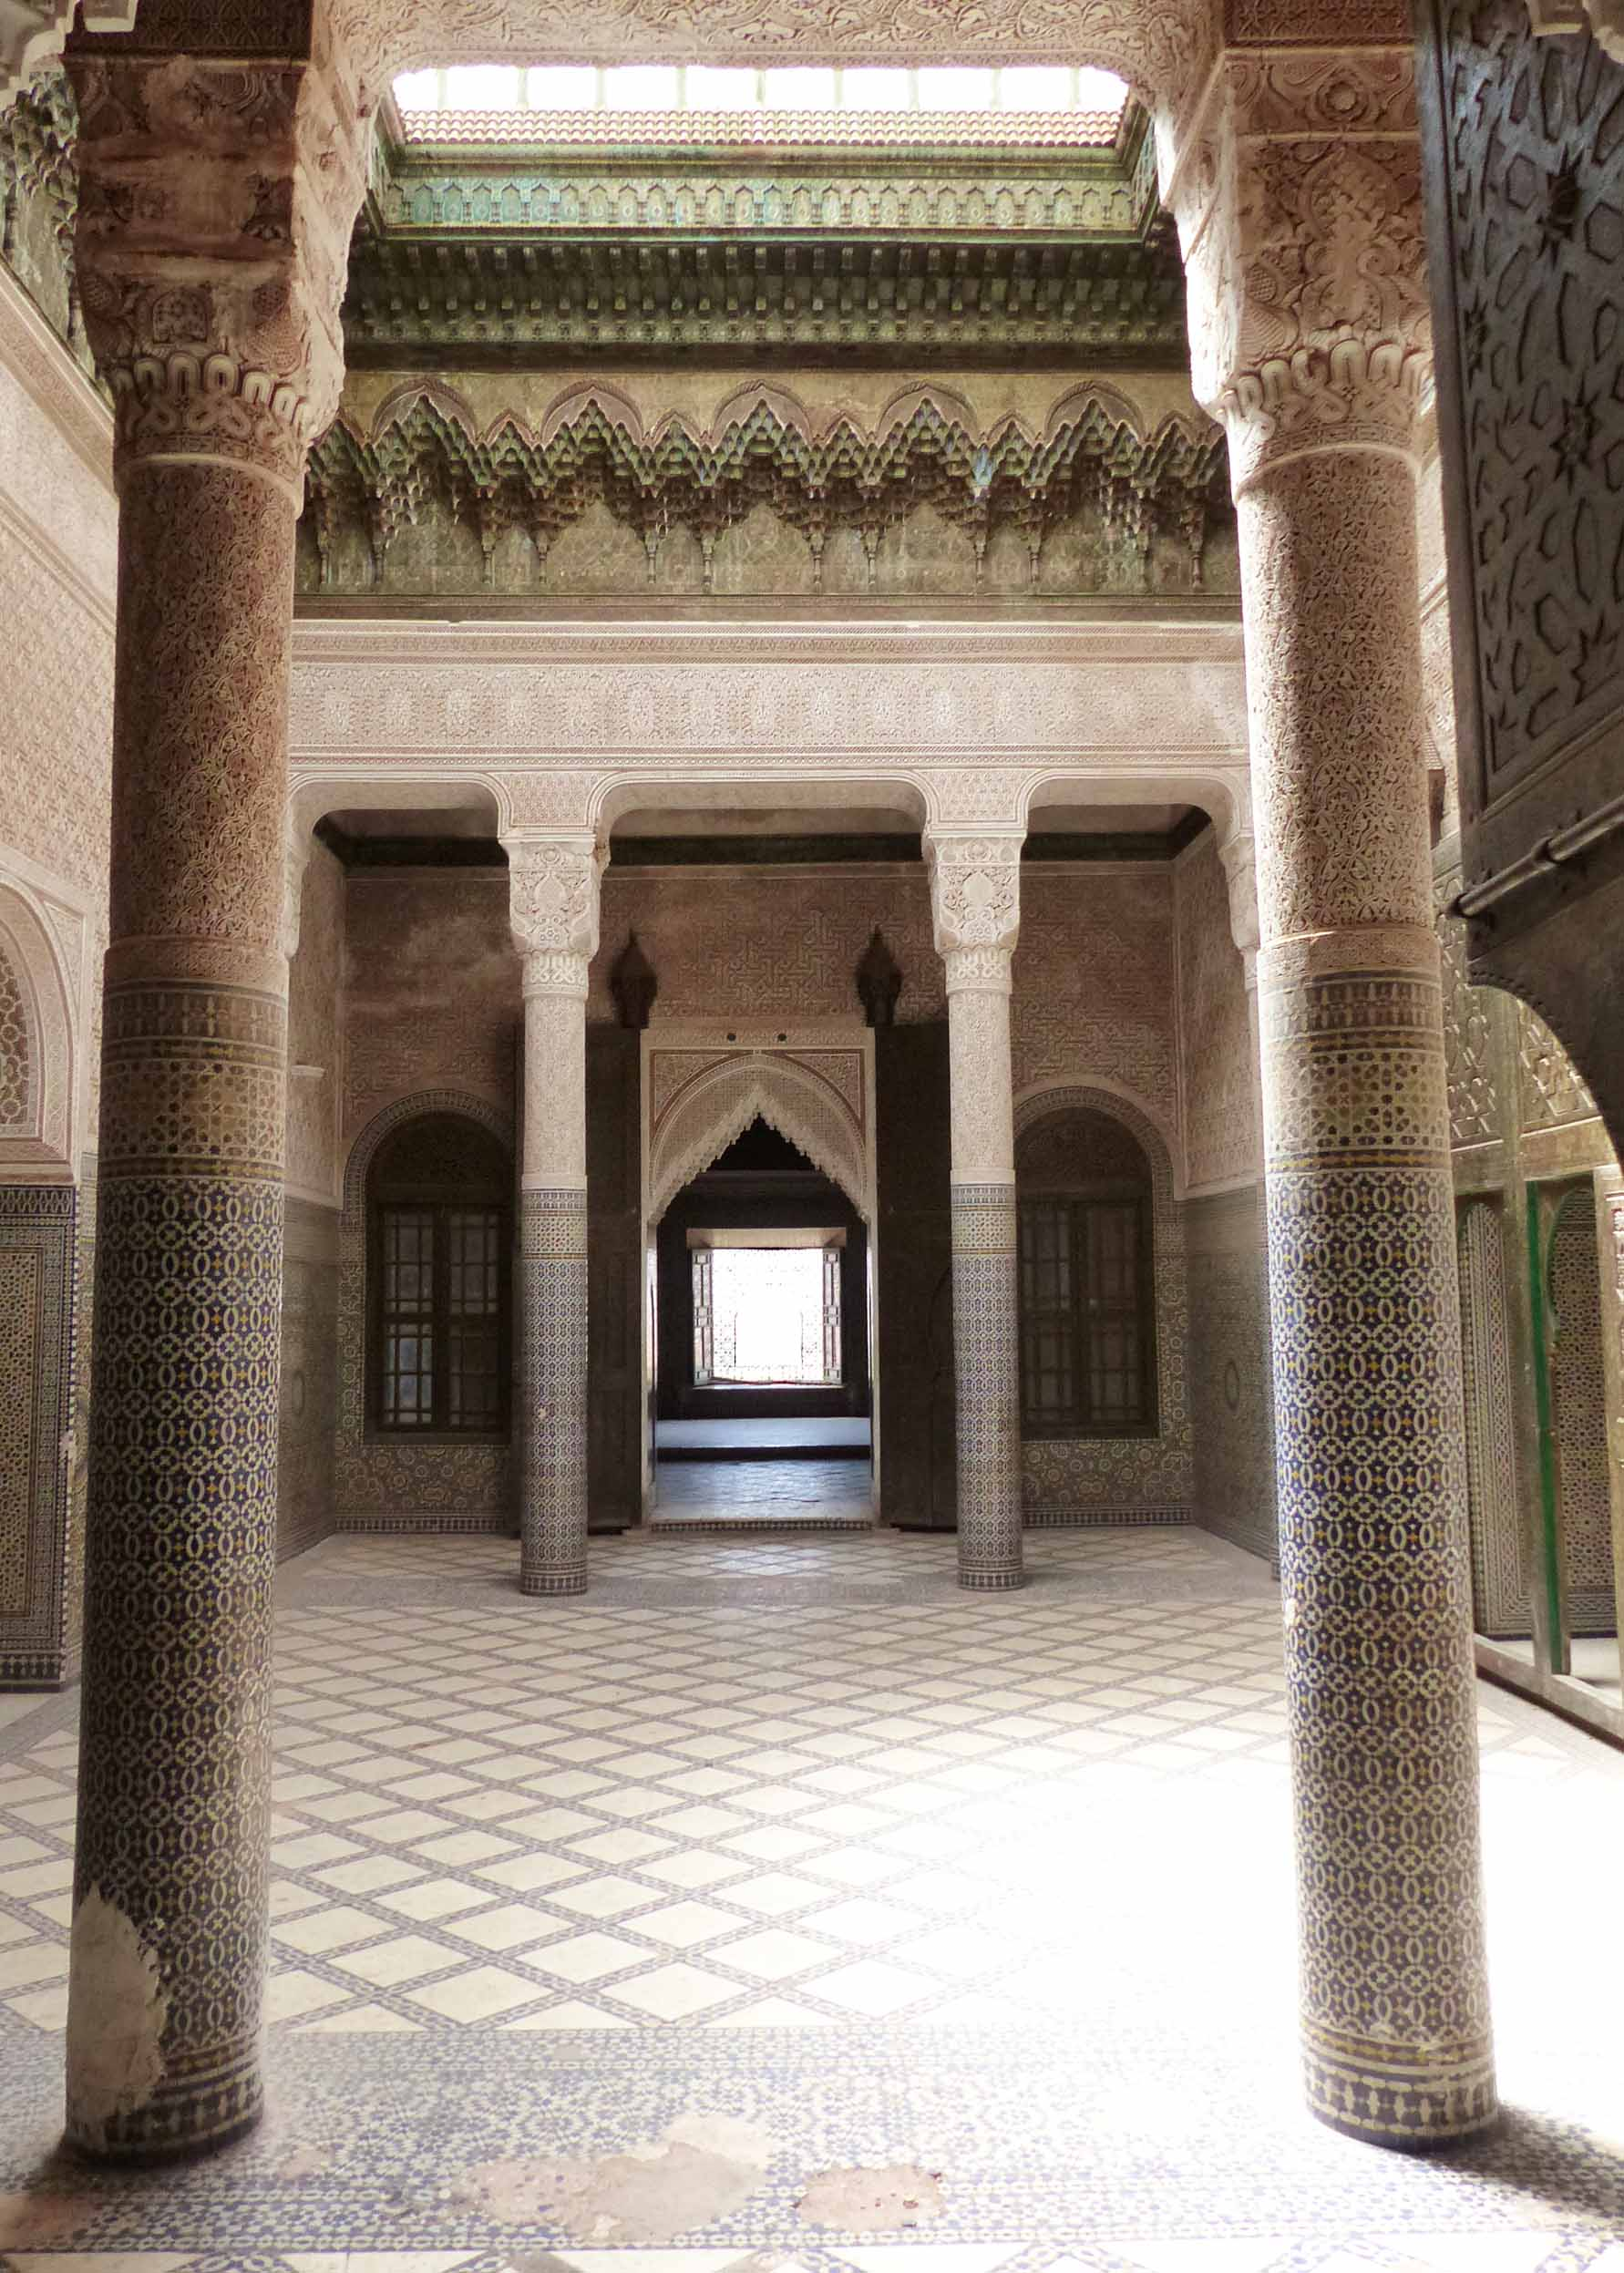 Line of doors leading away, with tiled floor and columns